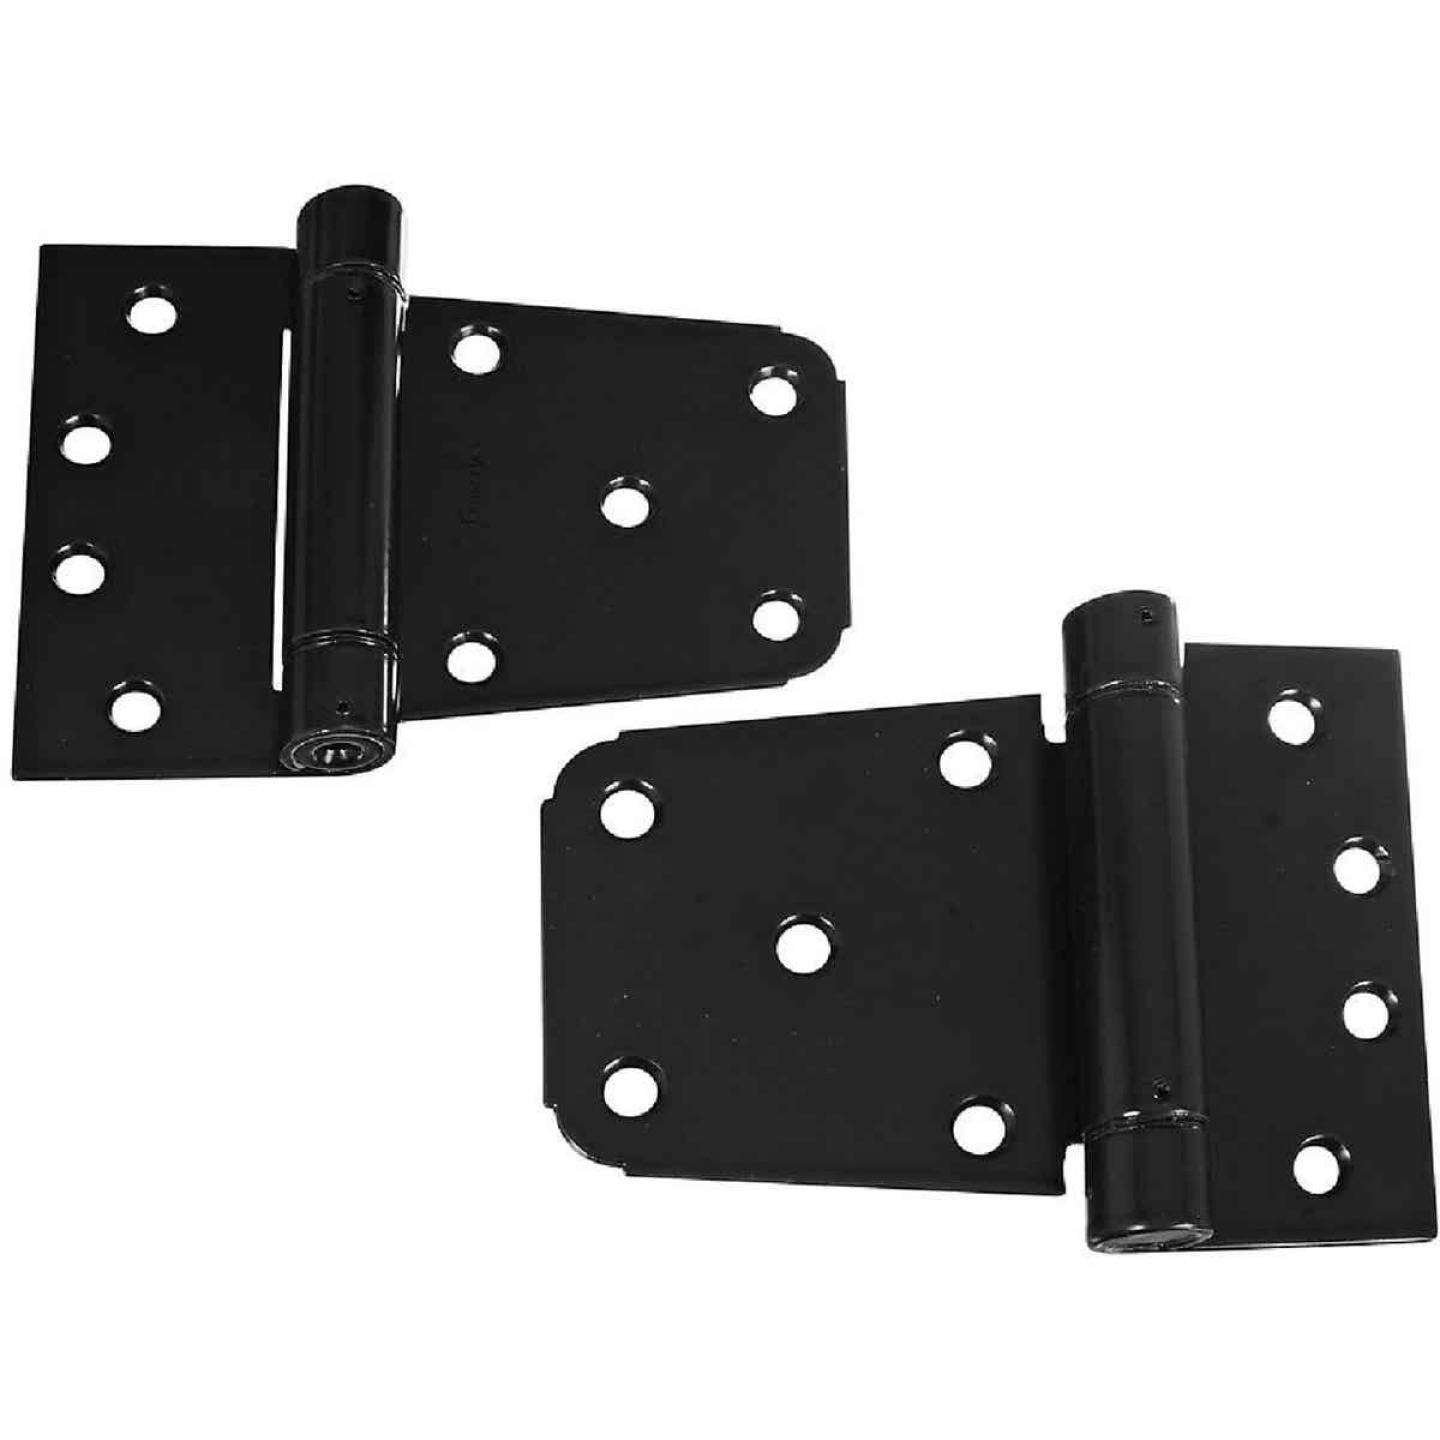 National 3-1/2 In. Black Heavy-Duty Gate Hinge Set (2 Count) Image 1